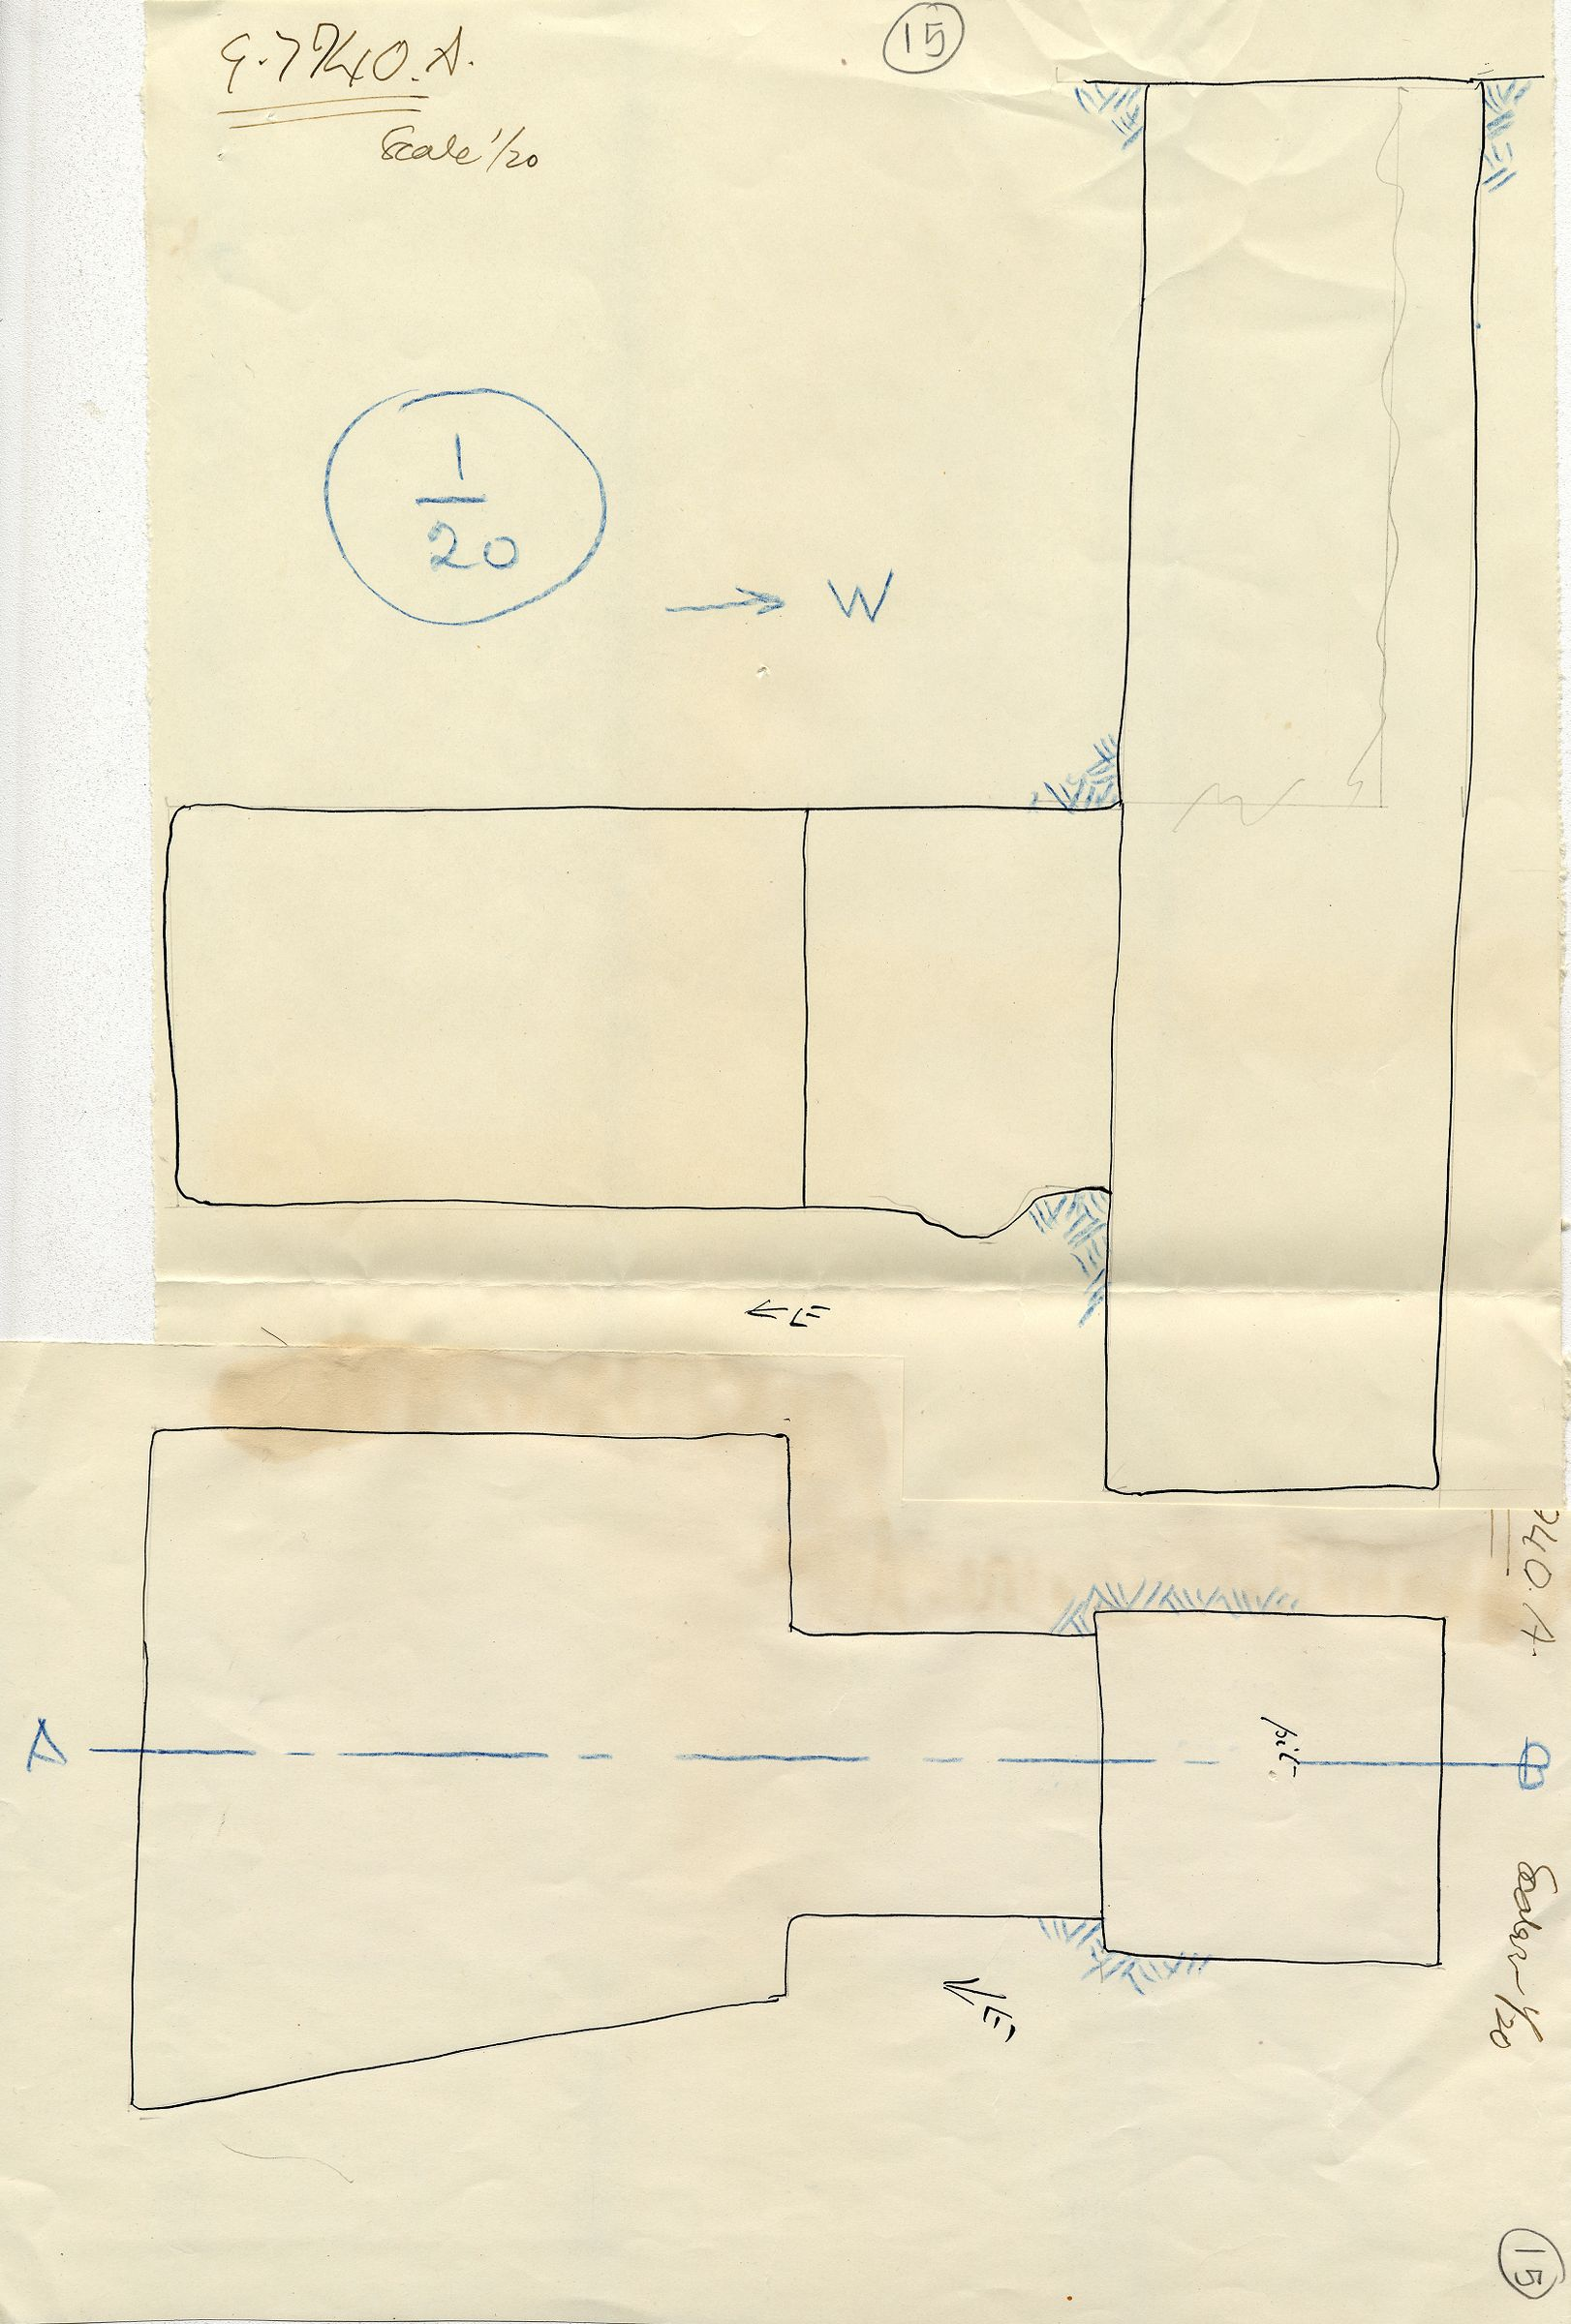 Maps and plans: G 7940, Shaft A